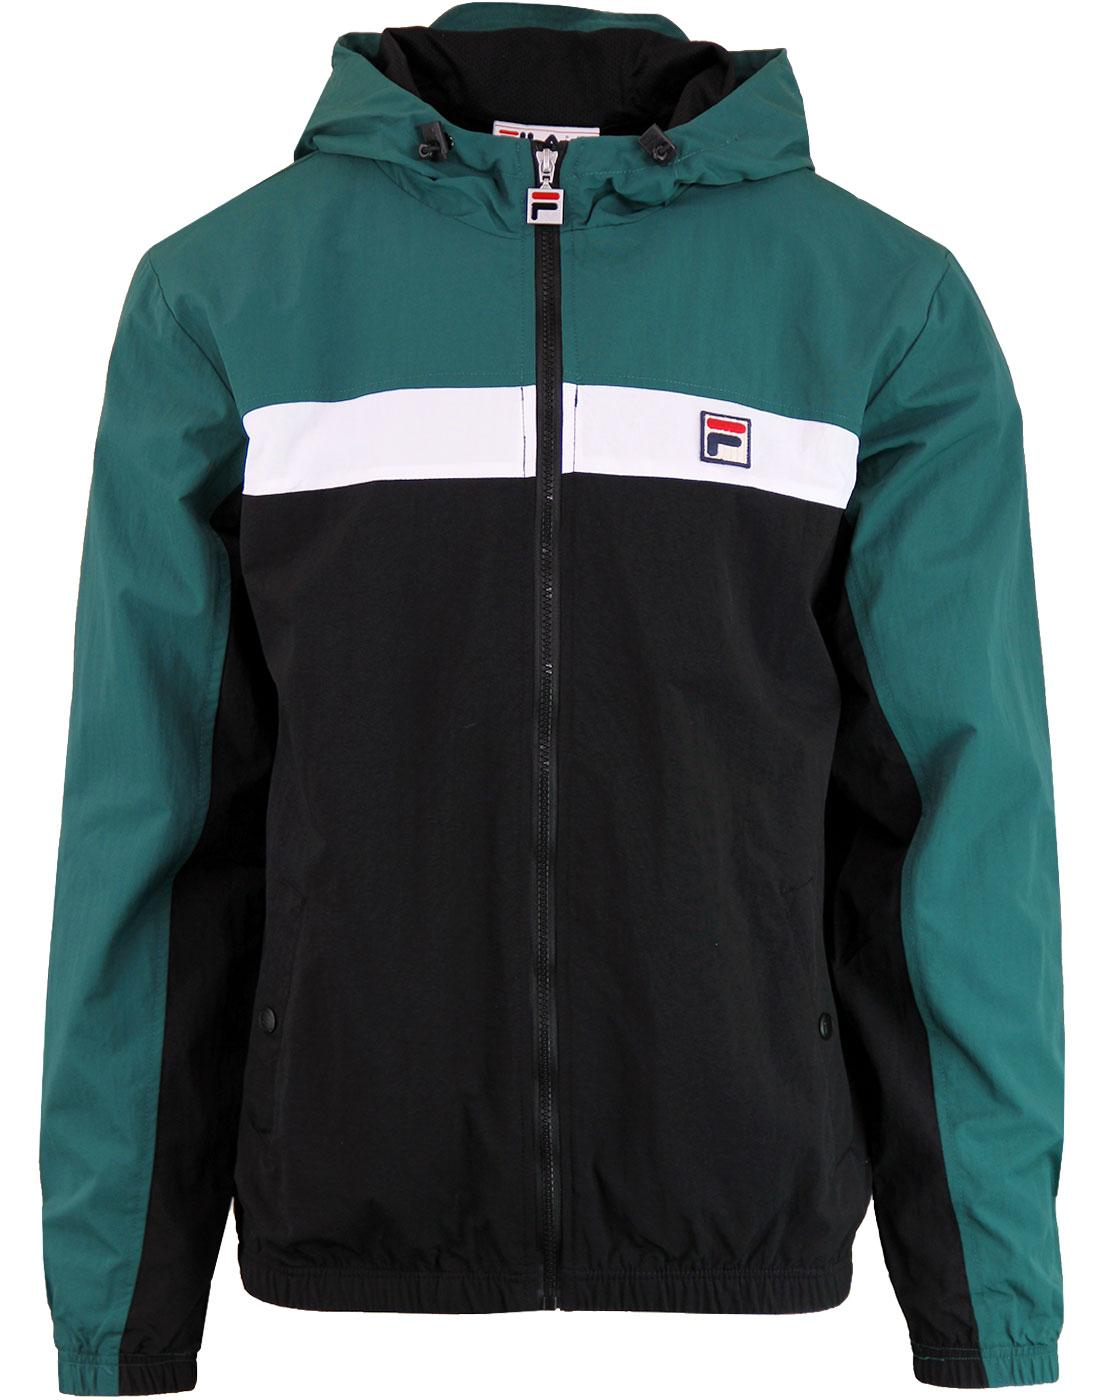 FILA VINTAGE Clipper Retro Stripe Hooded Jacket B